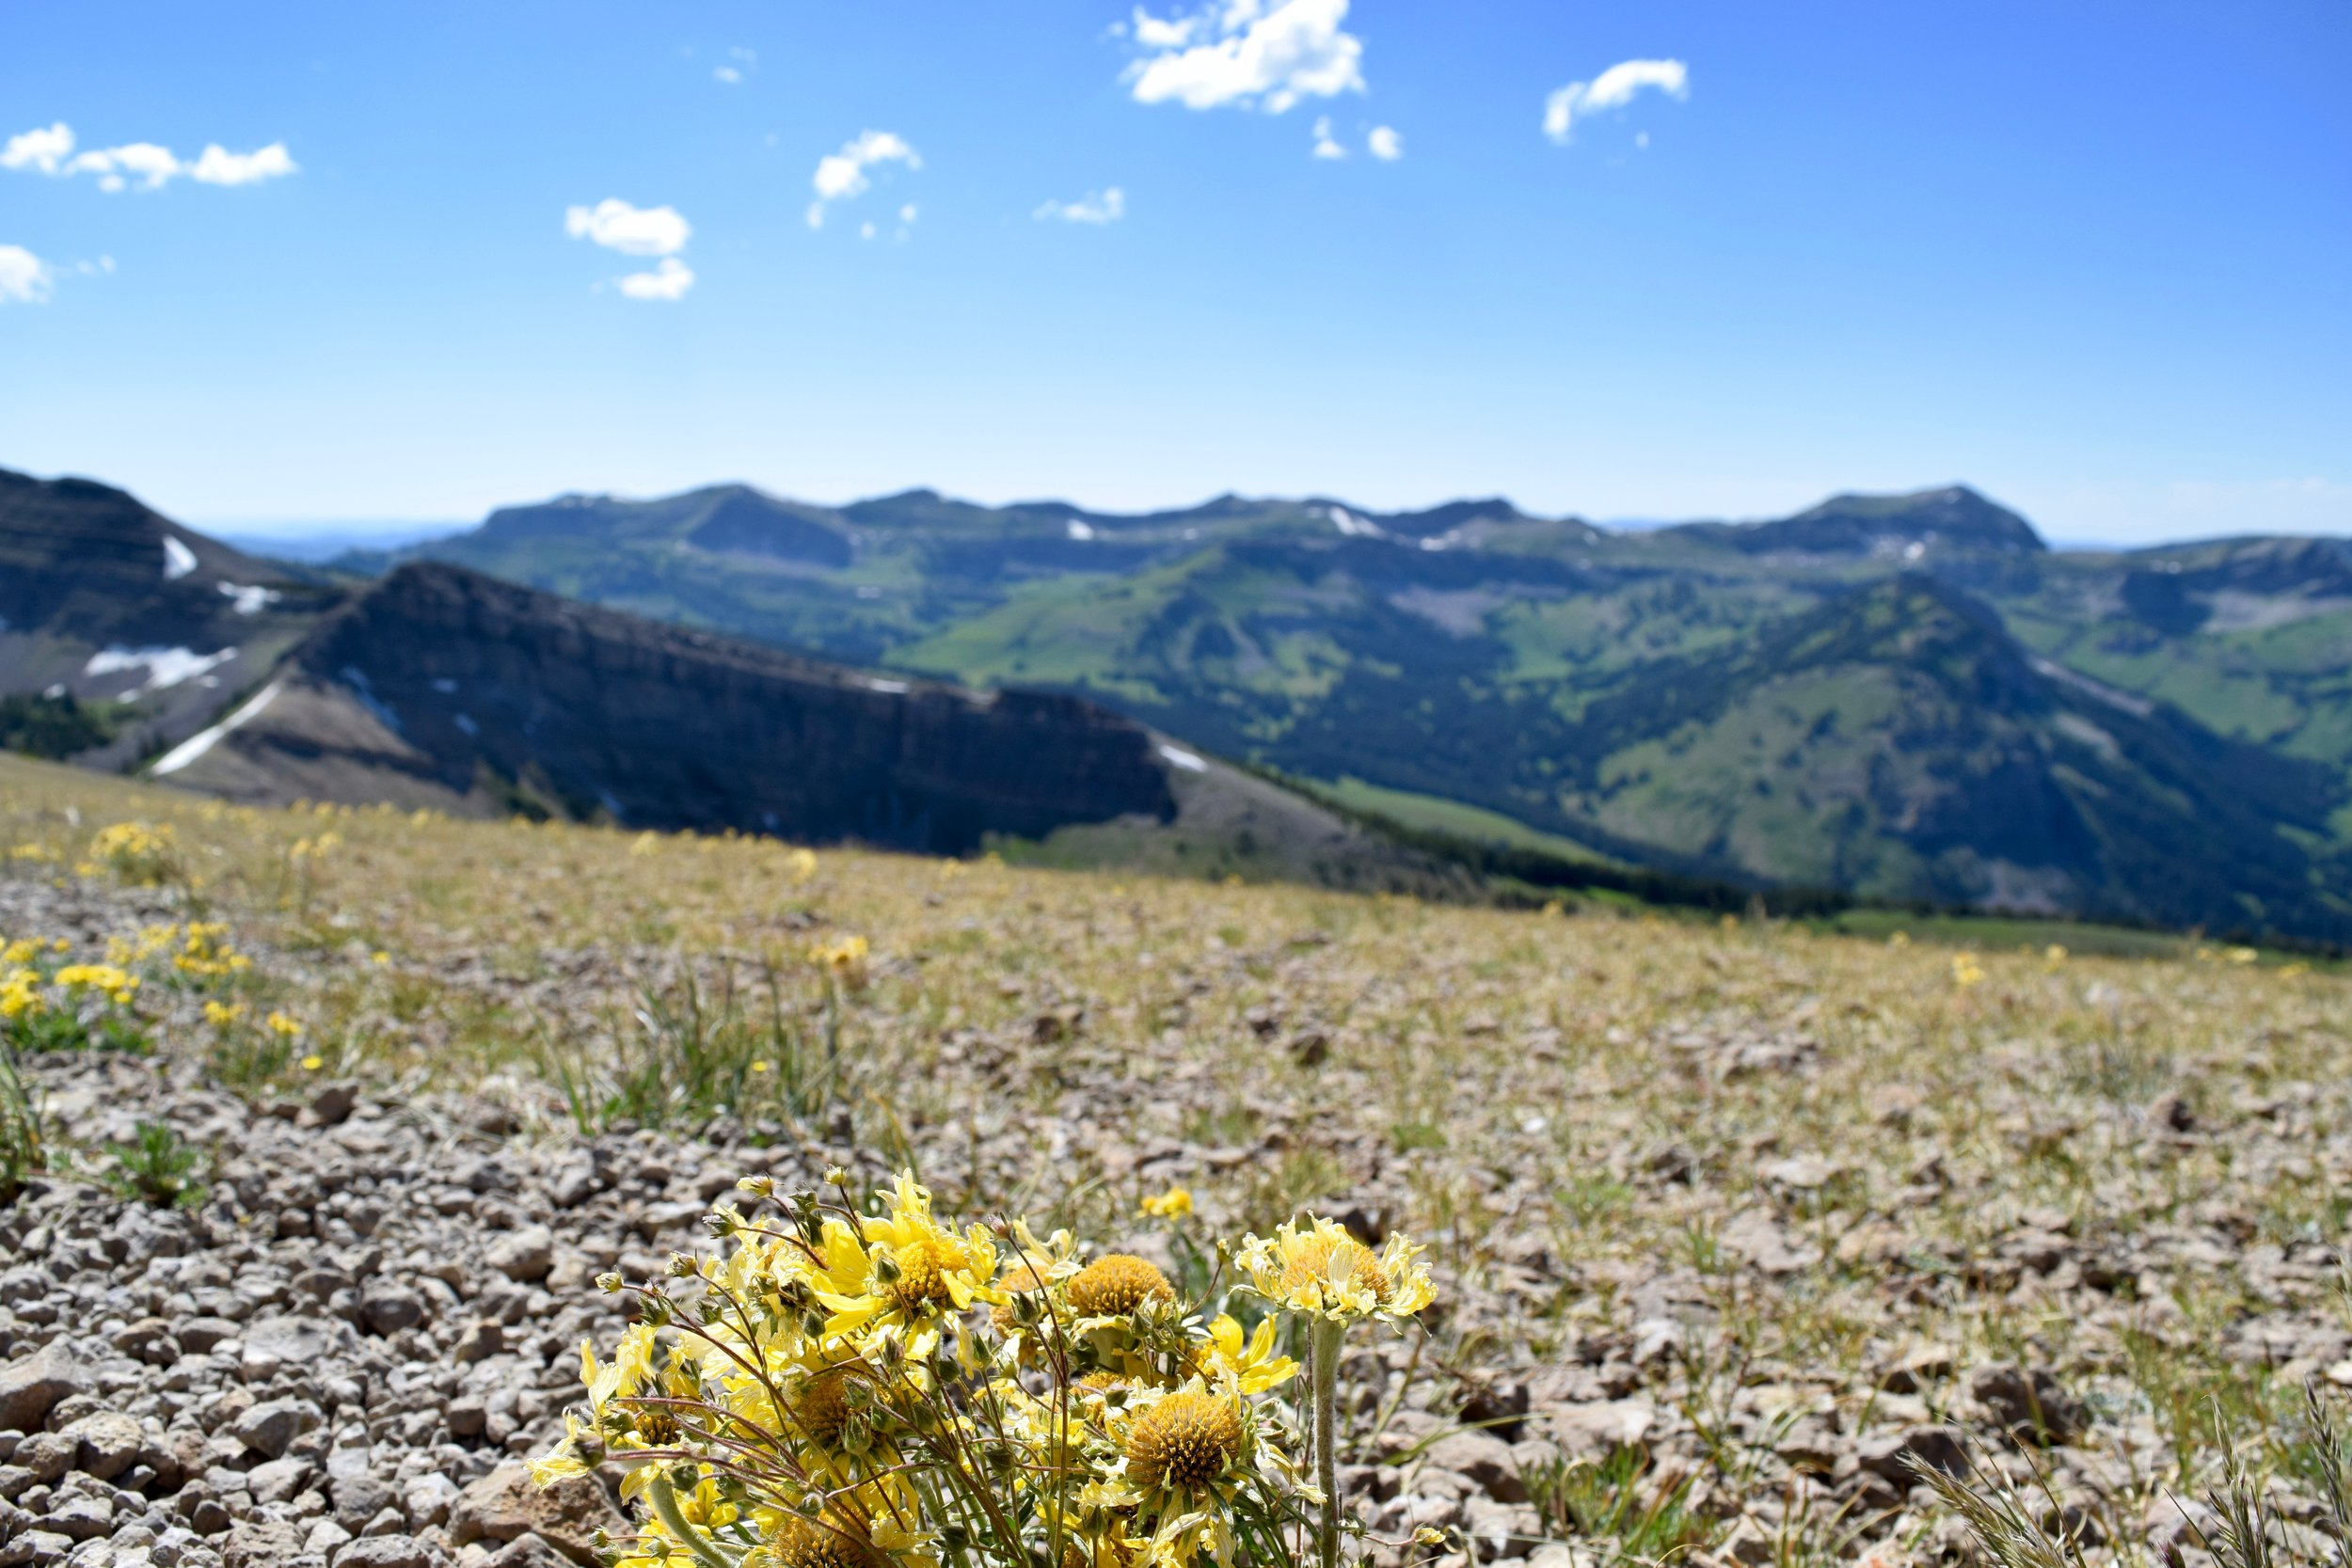 I think in a past life I was an alpine wildflower.